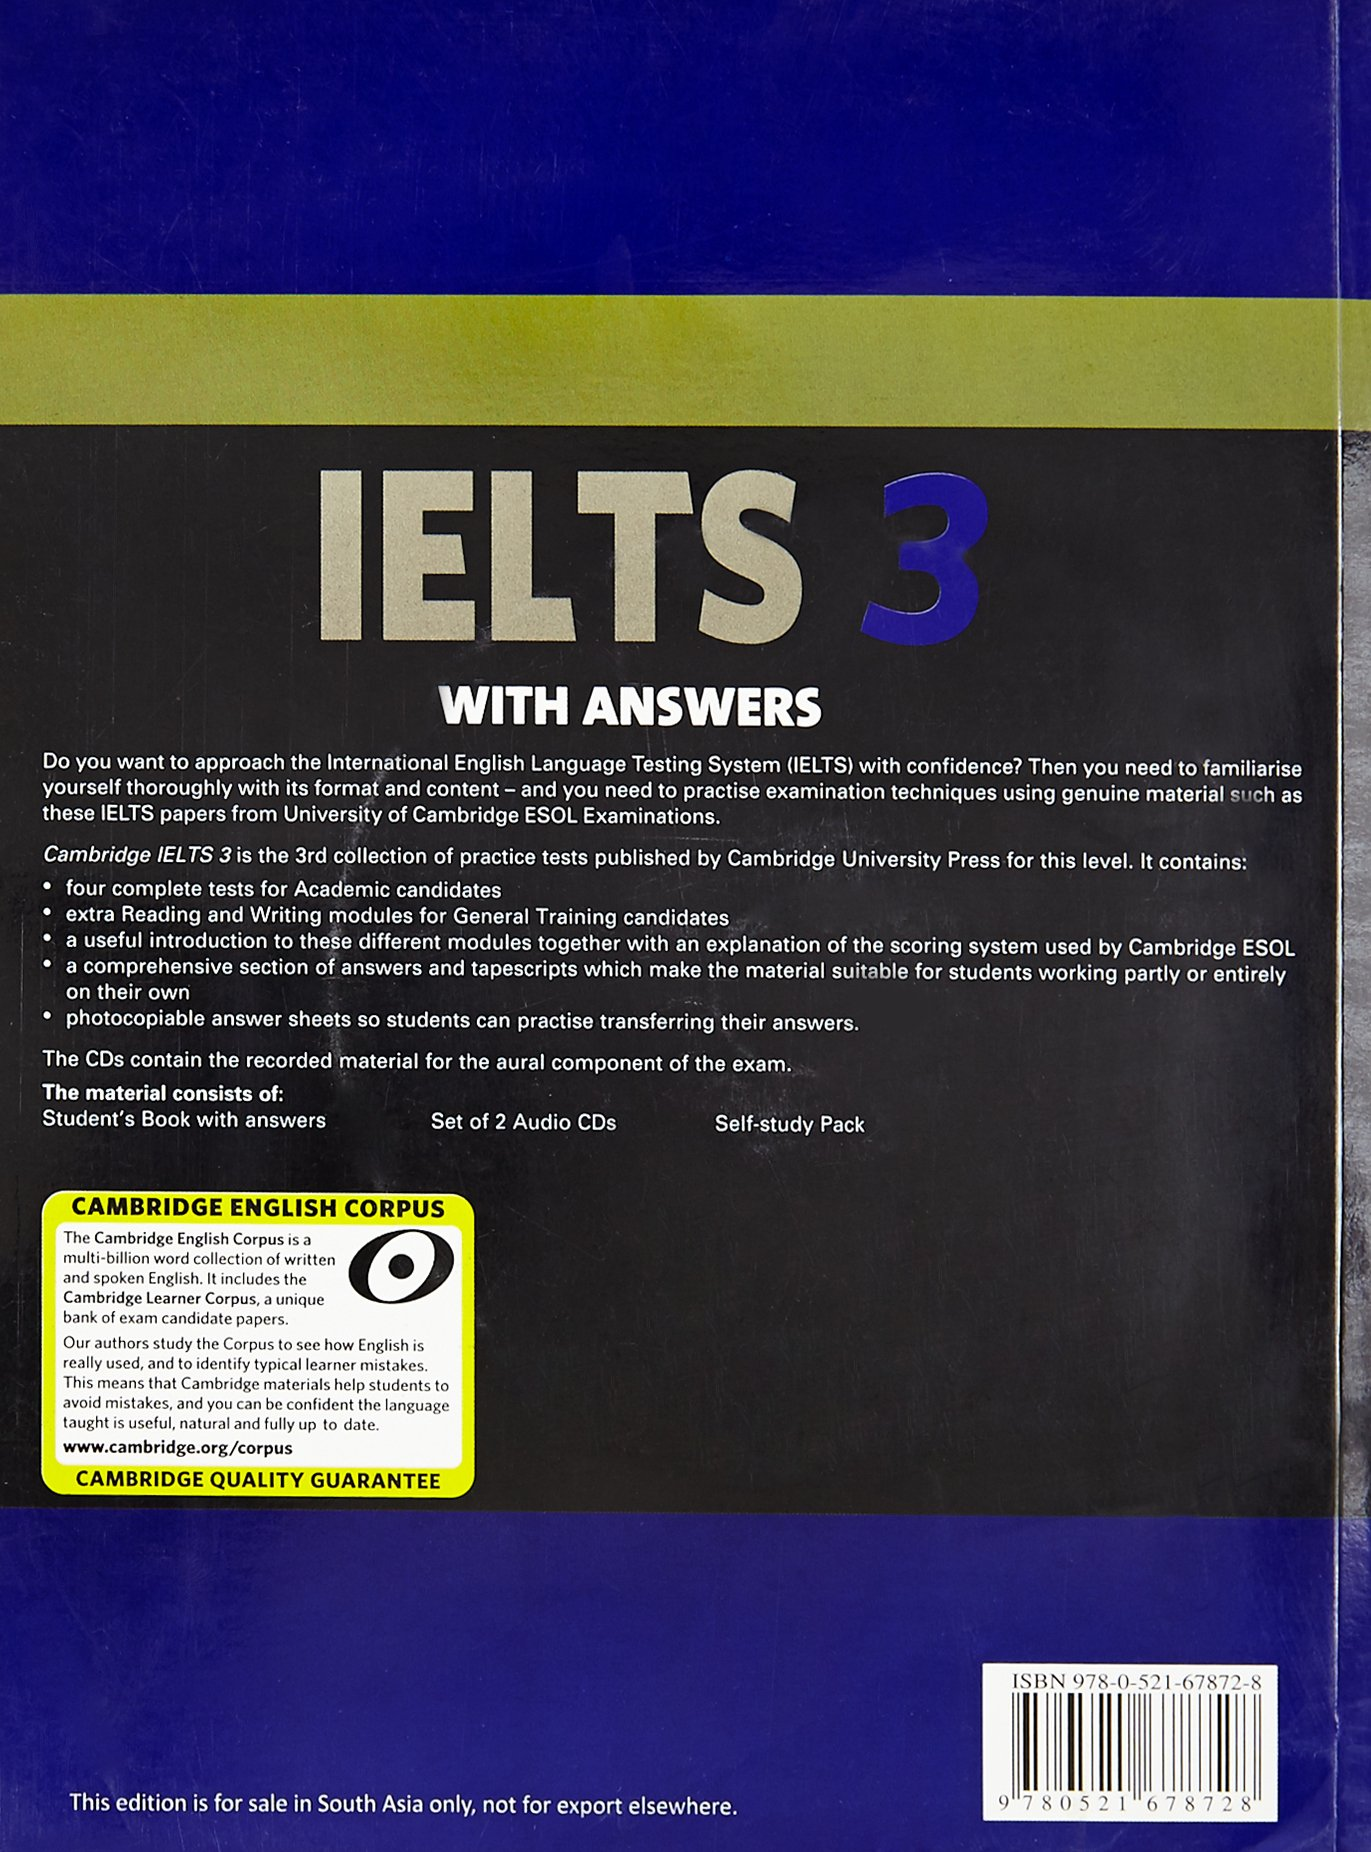 Buy cambridge english ielts 3 with answers with 2 audio cds book buy cambridge english ielts 3 with answers with 2 audio cds book online at low prices in india cambridge english ielts 3 with answers with 2 audio cds solutioingenieria Choice Image